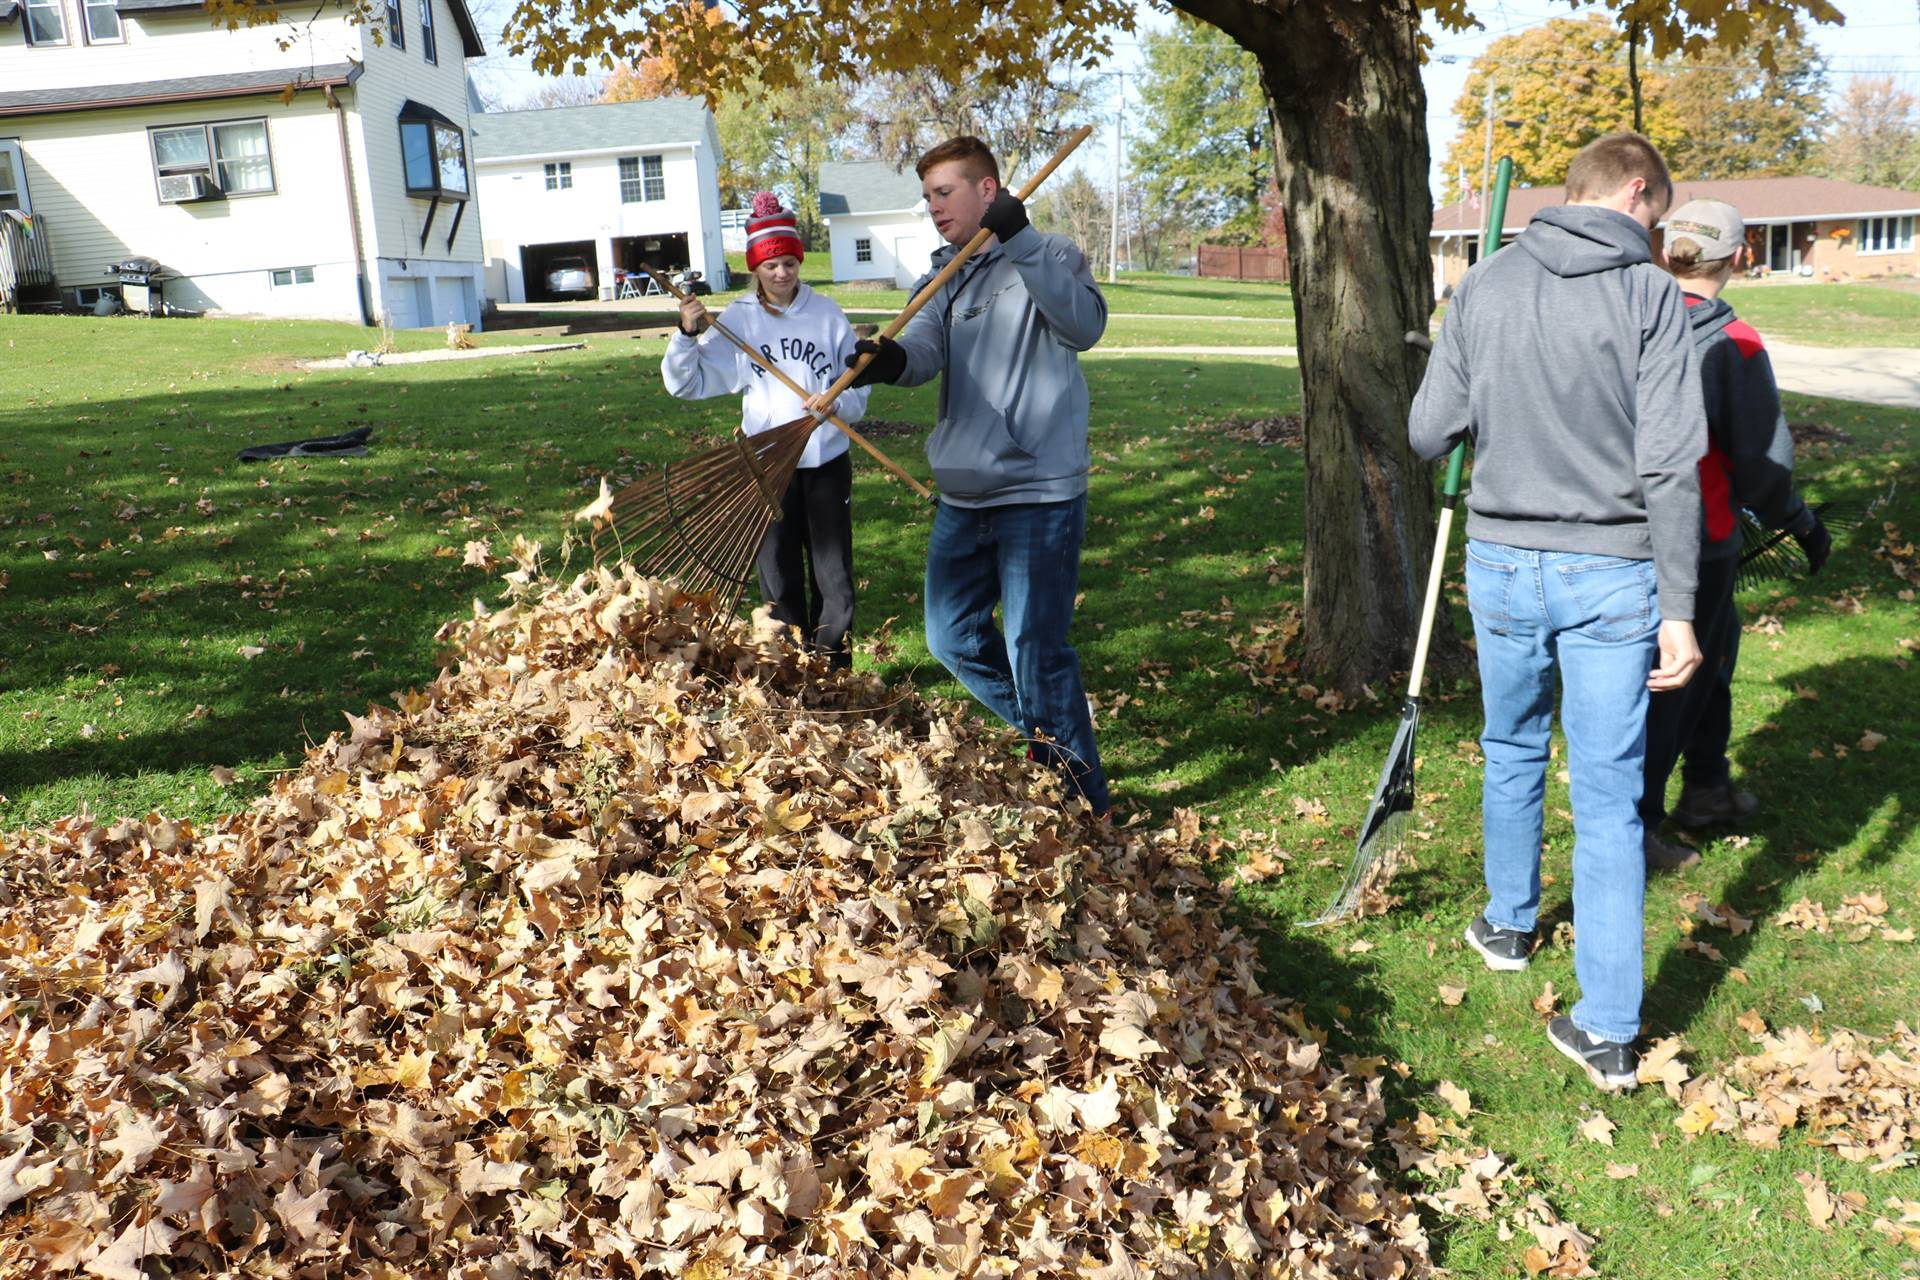 High school students raking leaves